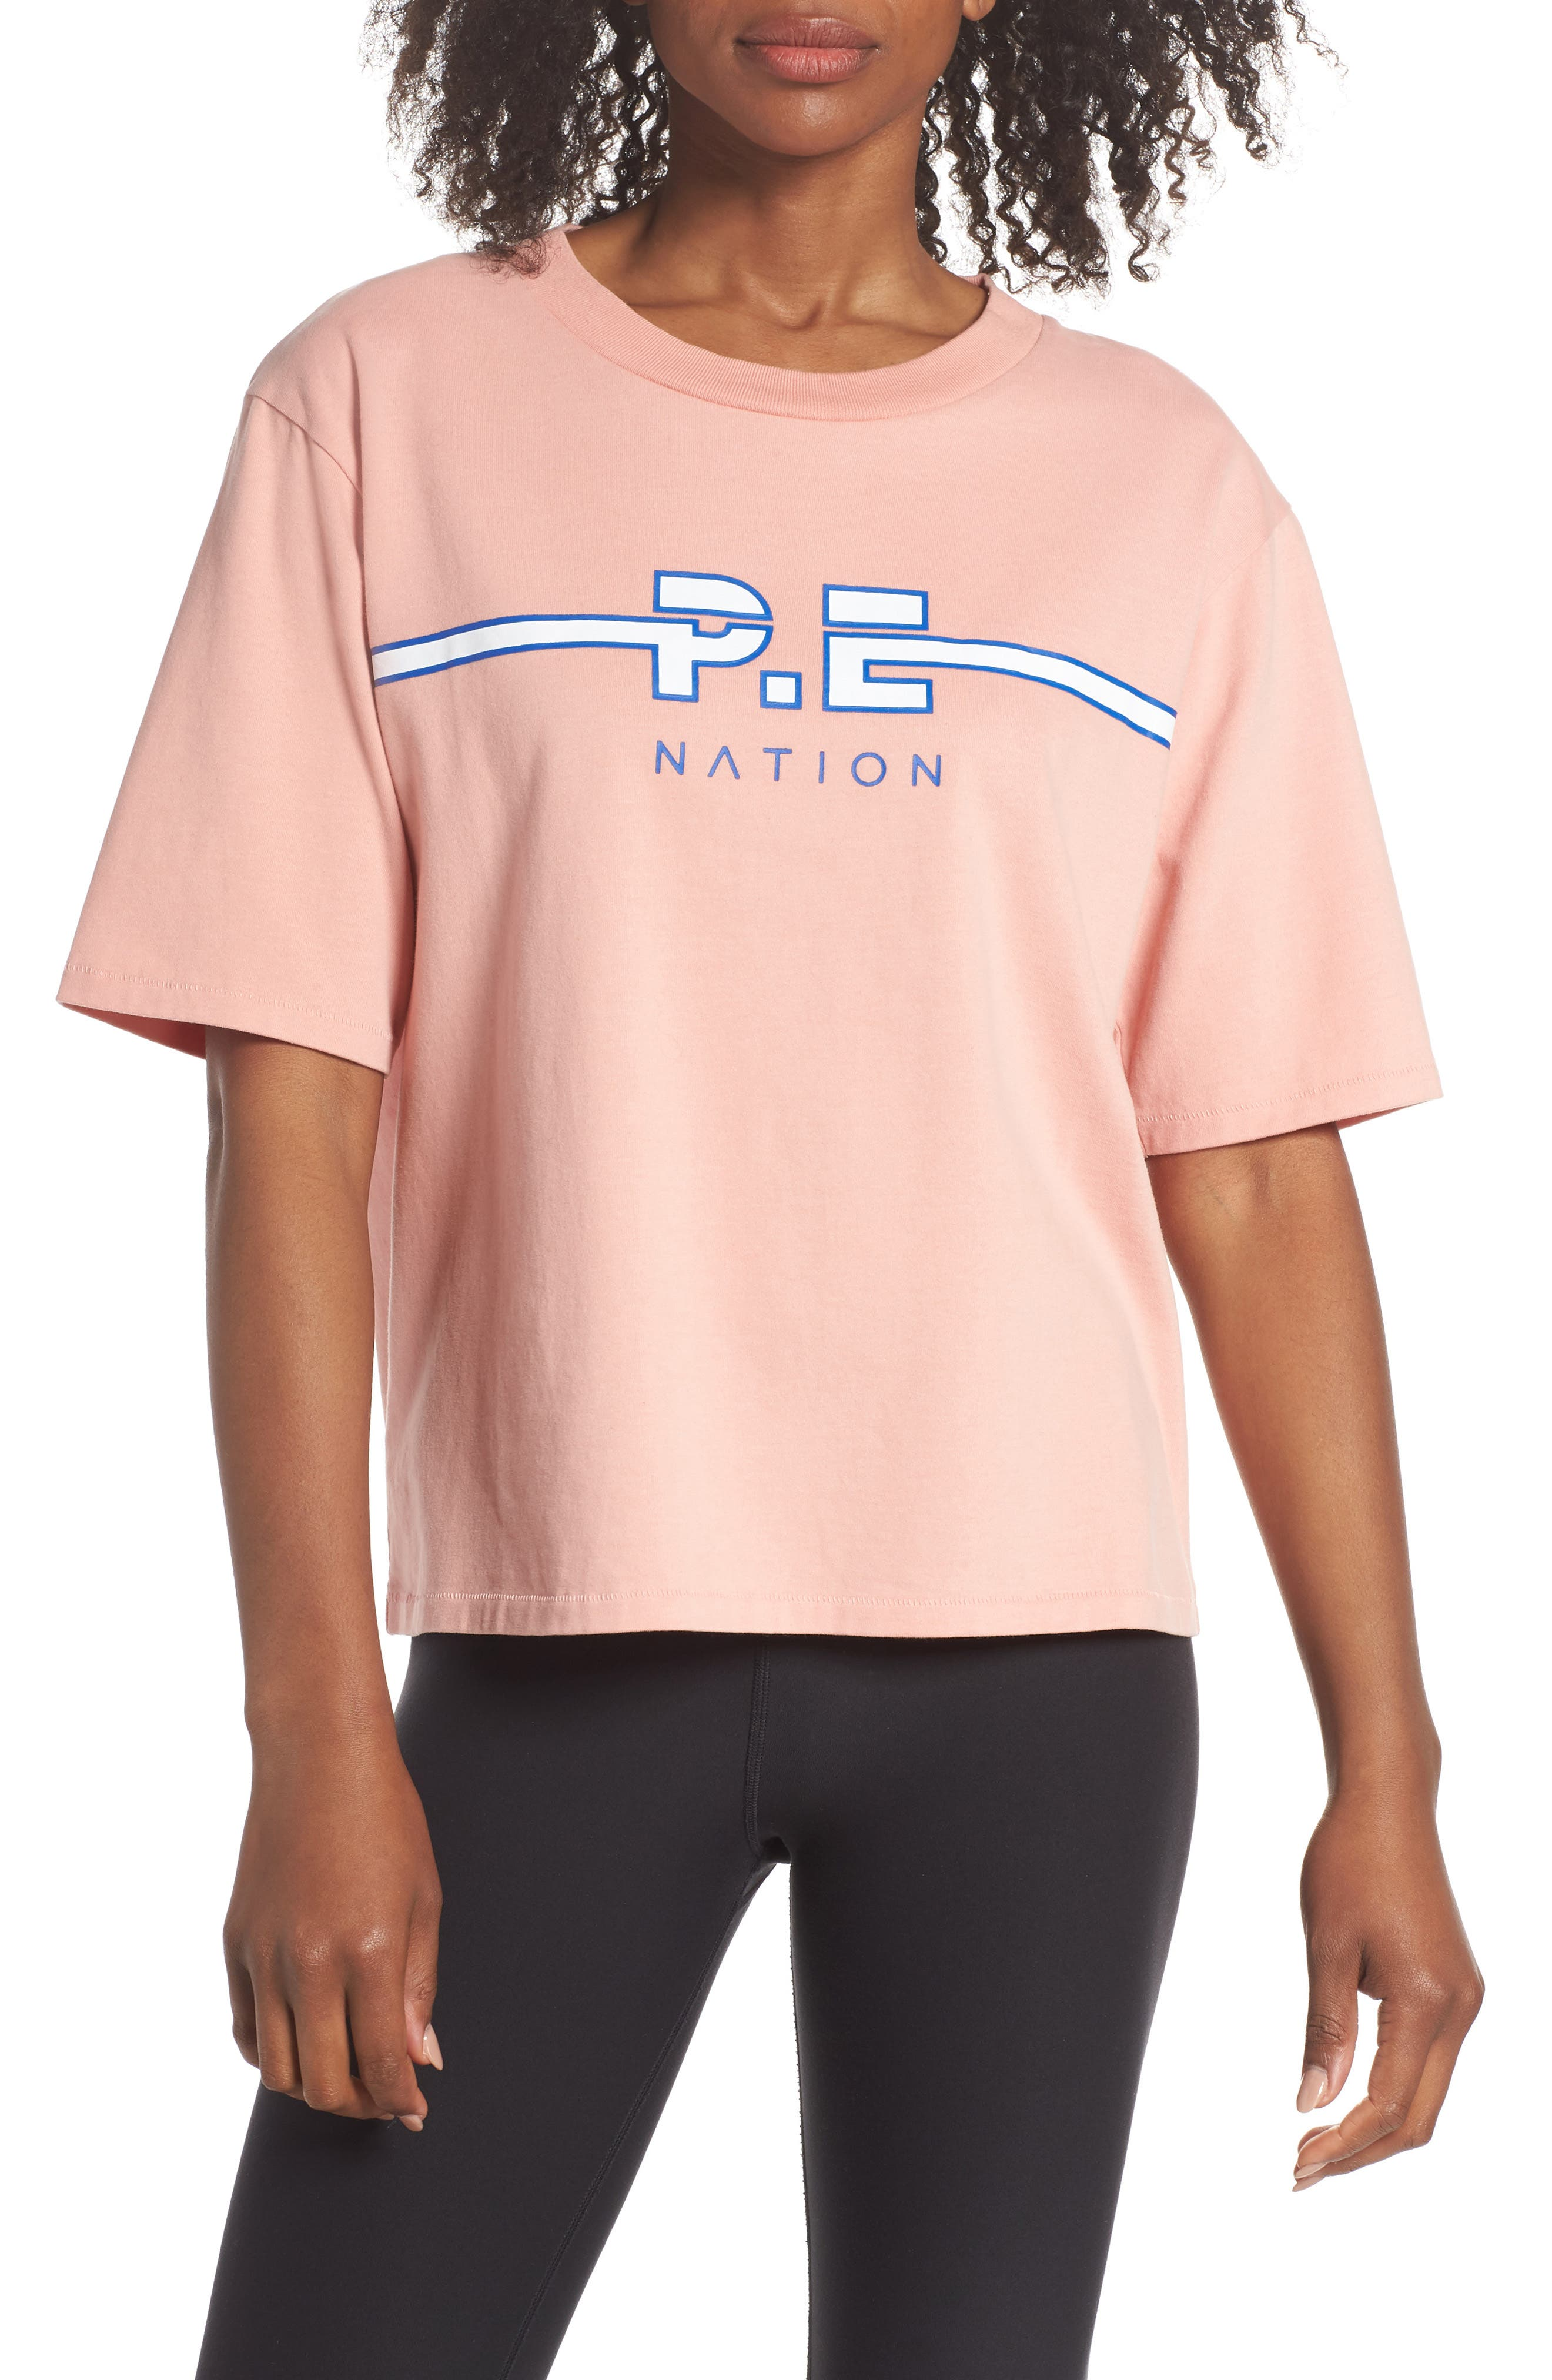 Active Duty Tee by P.E Nation